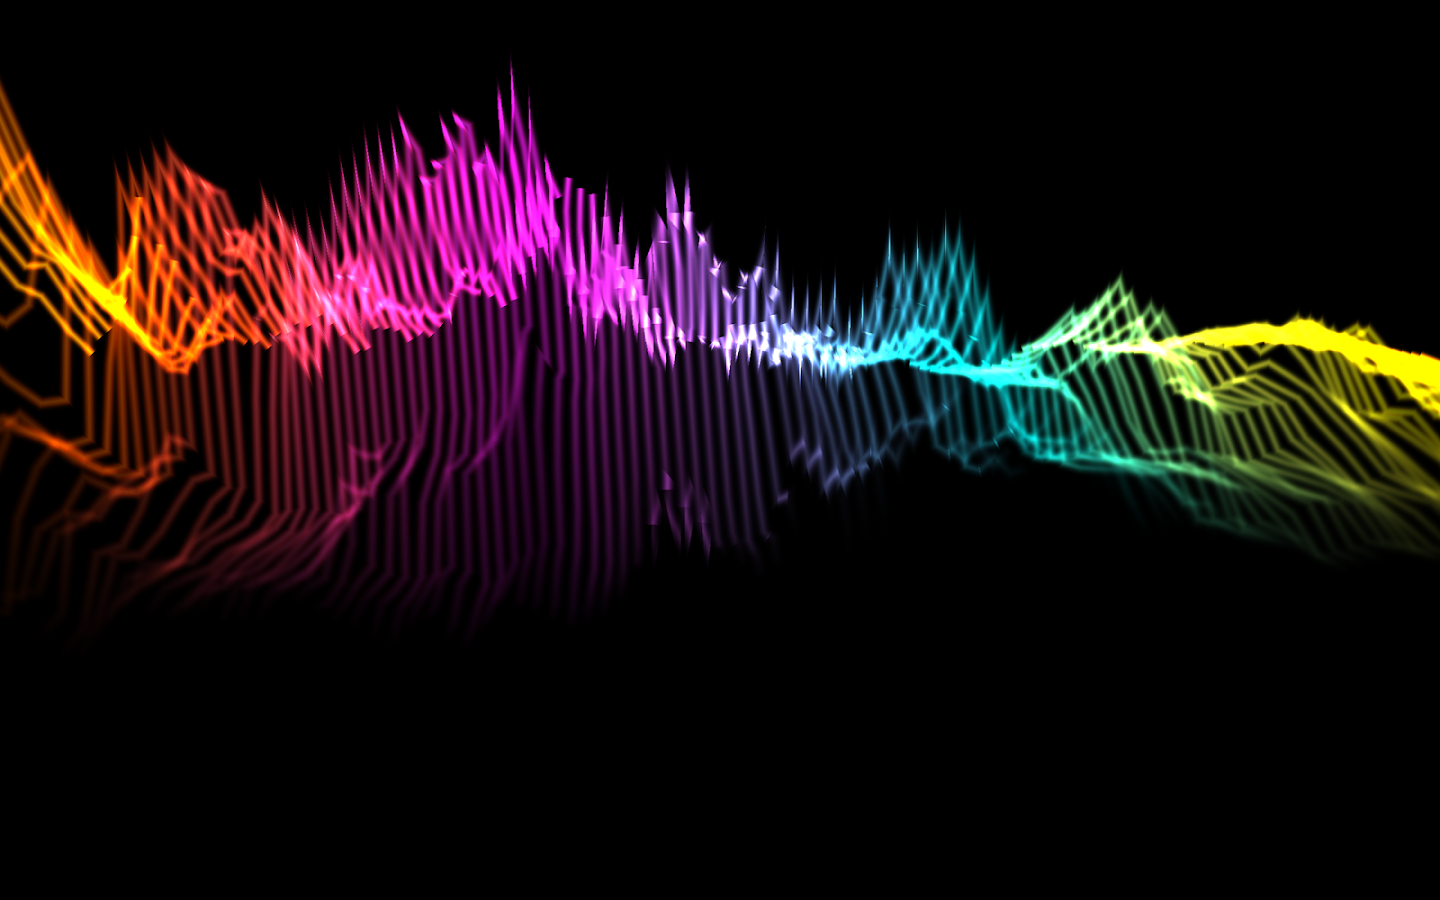 Music Visualizer 0 5 0 APK Download - Android Music & Audio Apps